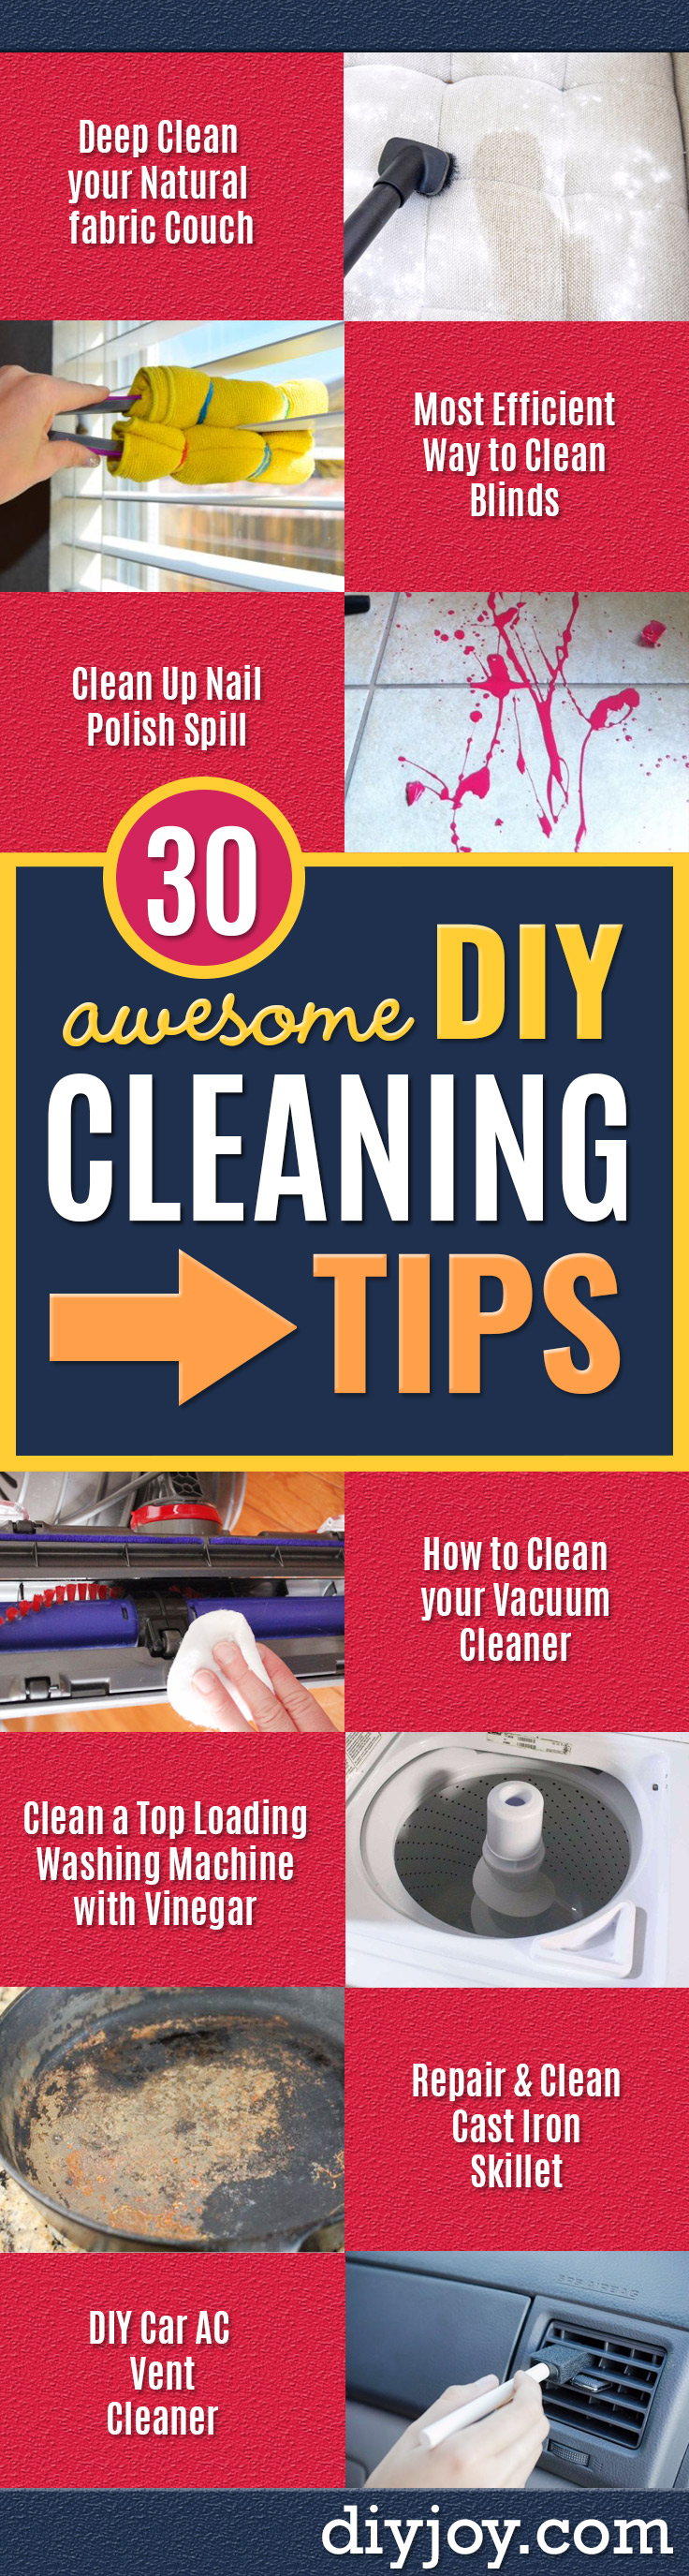 Cleaning Ideas for the Home -How to Clean Anything in the House, Windows, Kitchen, Bathroom Tile, Shower, Spills, Laundry, Walls, Carpets, Floors - Best DIY Cleaning Hacks, Recipes and Tutorials - Daily Ways to Clean For Kitchen, For Couches, Bathroom, Bedroom, Laundry, Floors, Furniture, Windows, Cleaners and More for Cleaning Your Home- Quick Ideas for Lazy People - Cool Cleaning Hack Tutorial